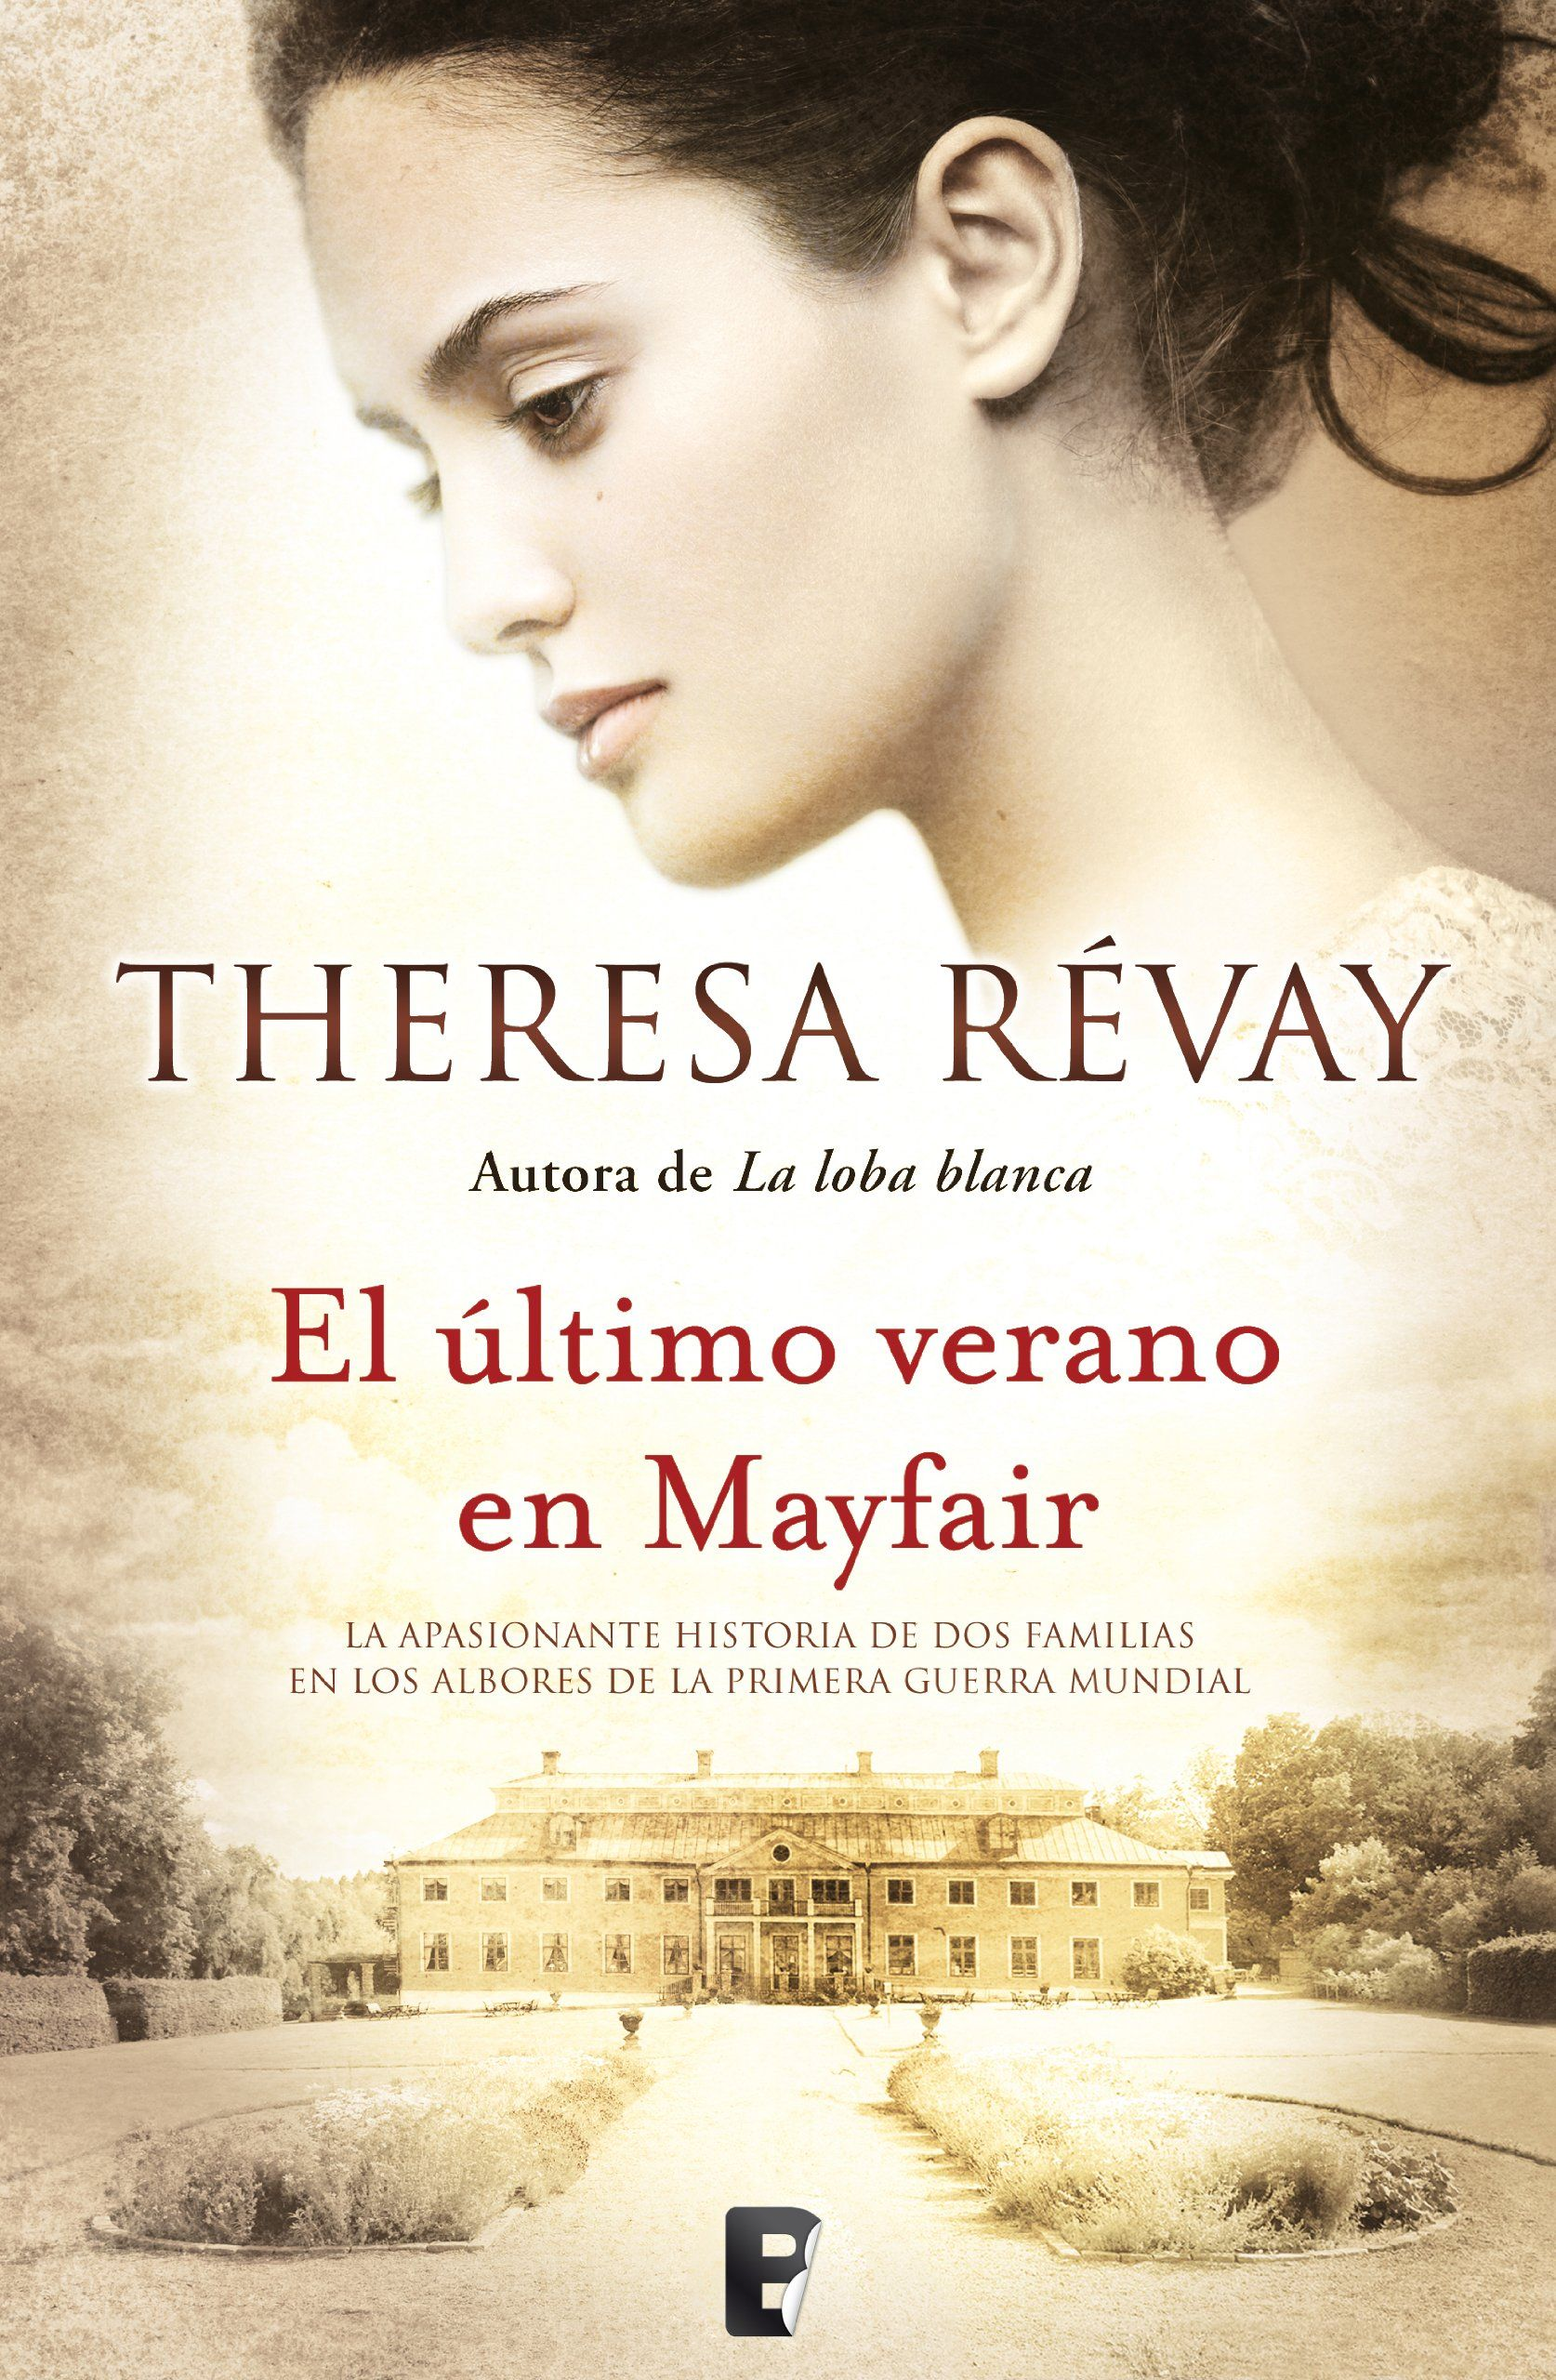 Amazon.es Kindle Libros El último Verano En Mayfair B De Books Novela Vergara